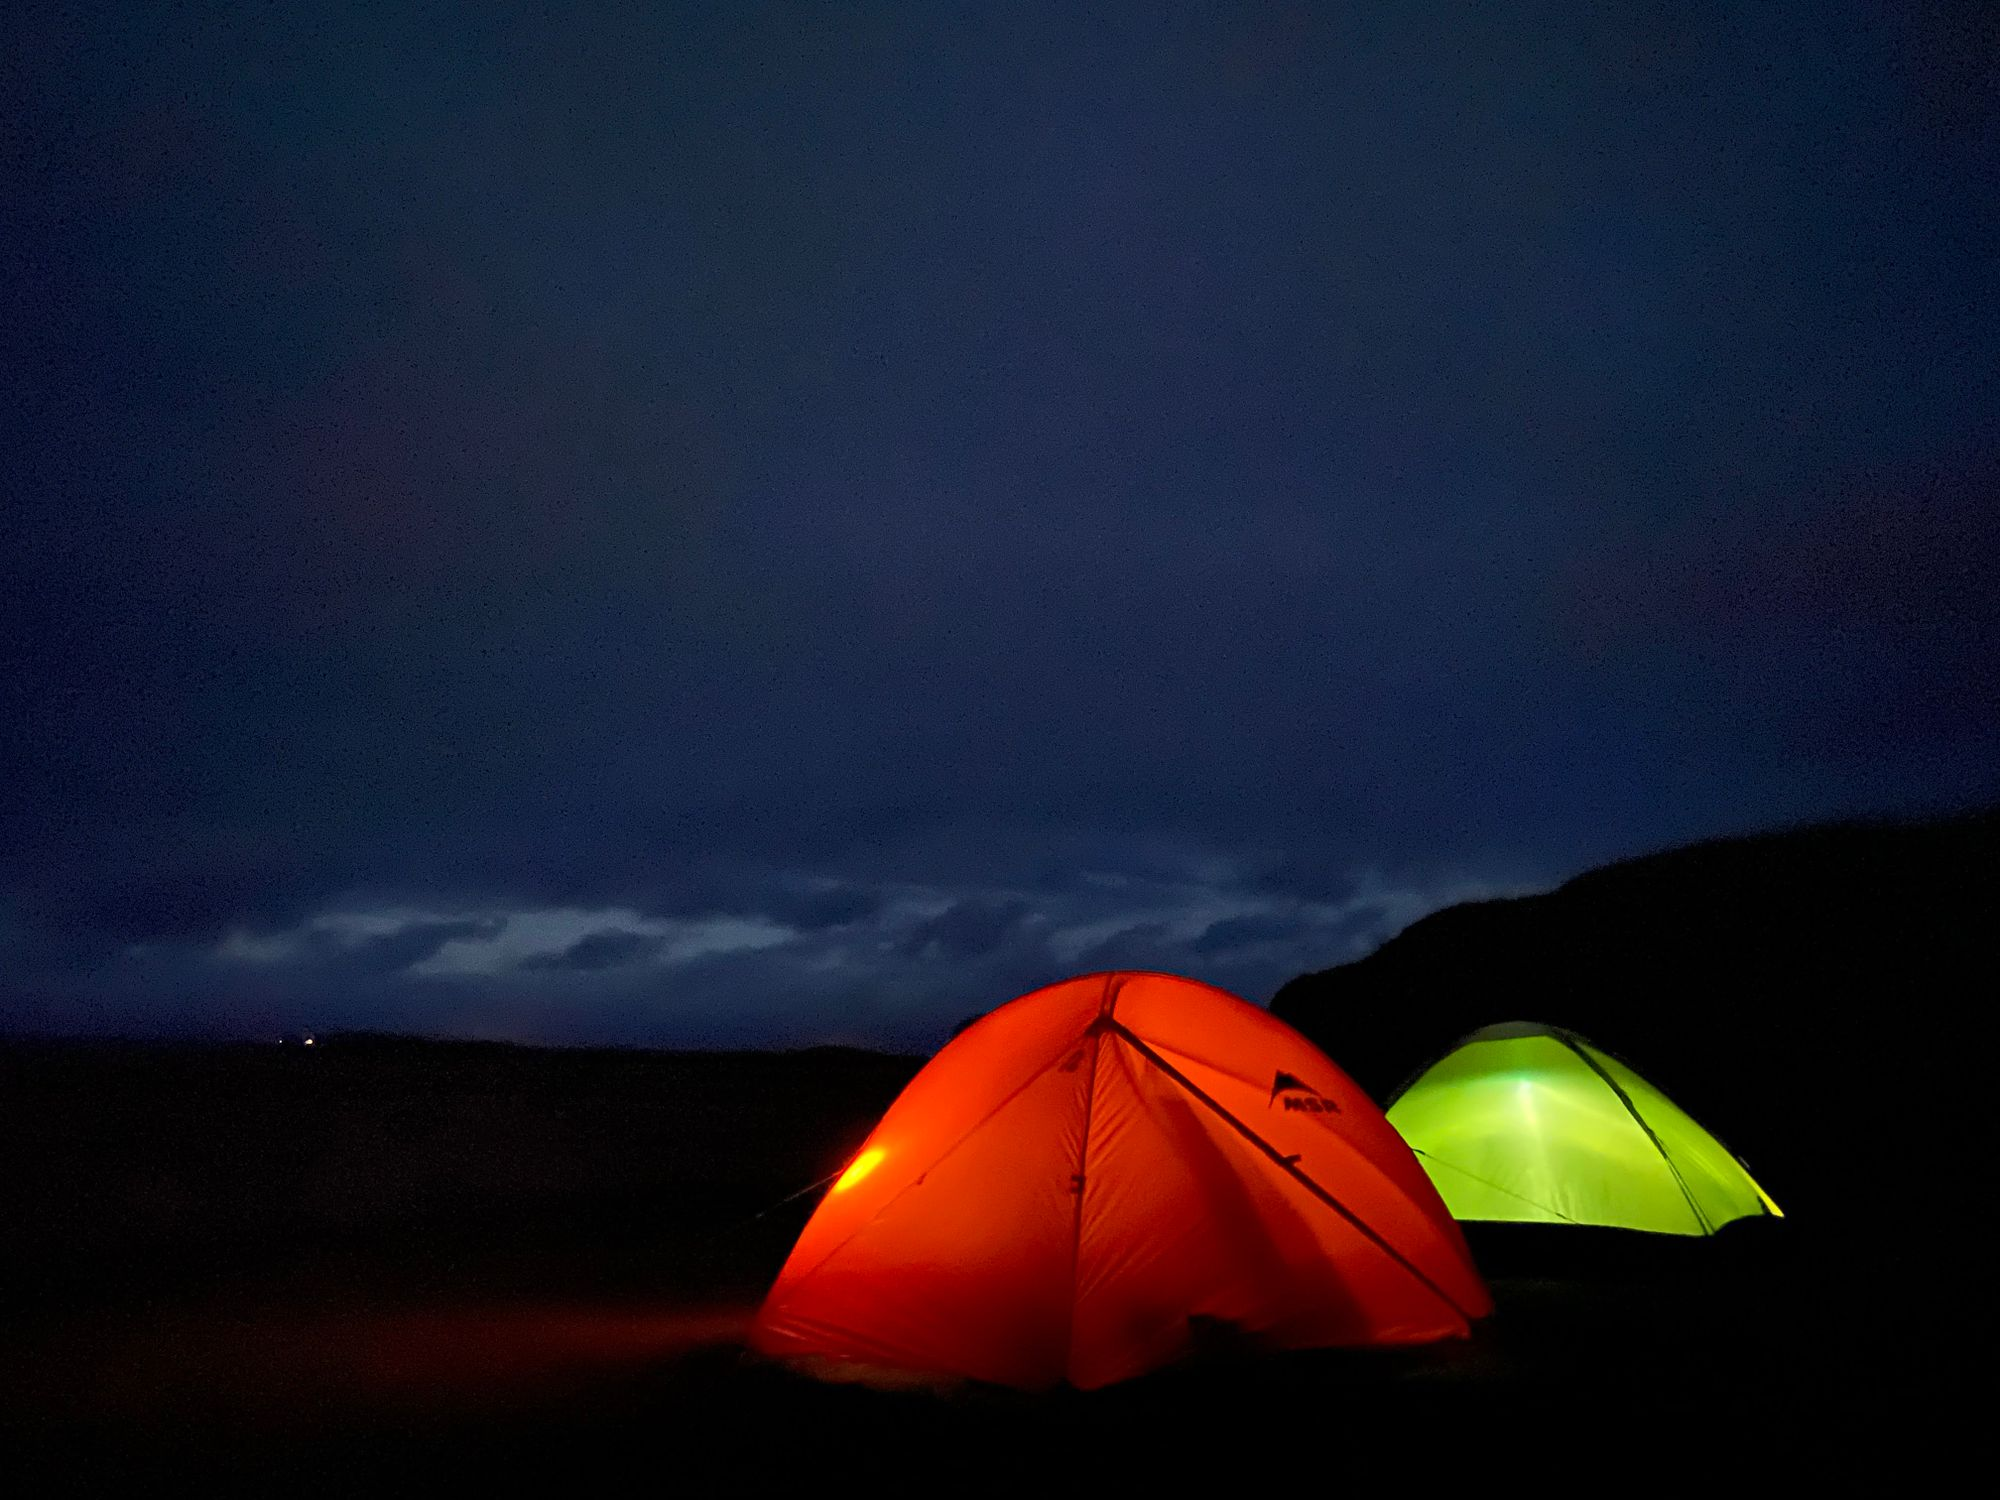 Two tents glowing in the darkness